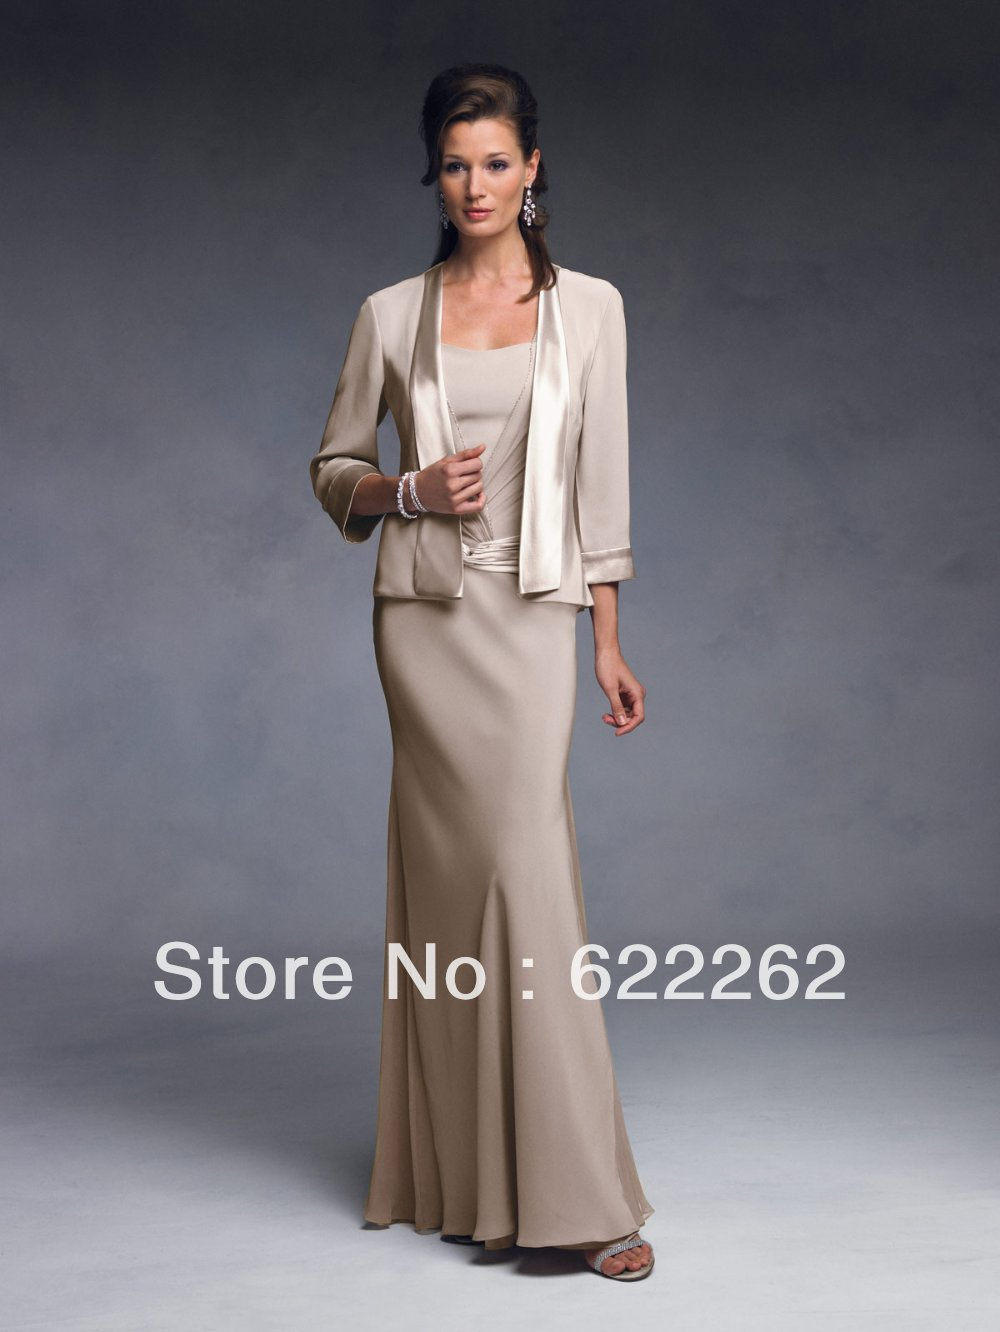 Jackets For Evening Dresses - Coat Nj